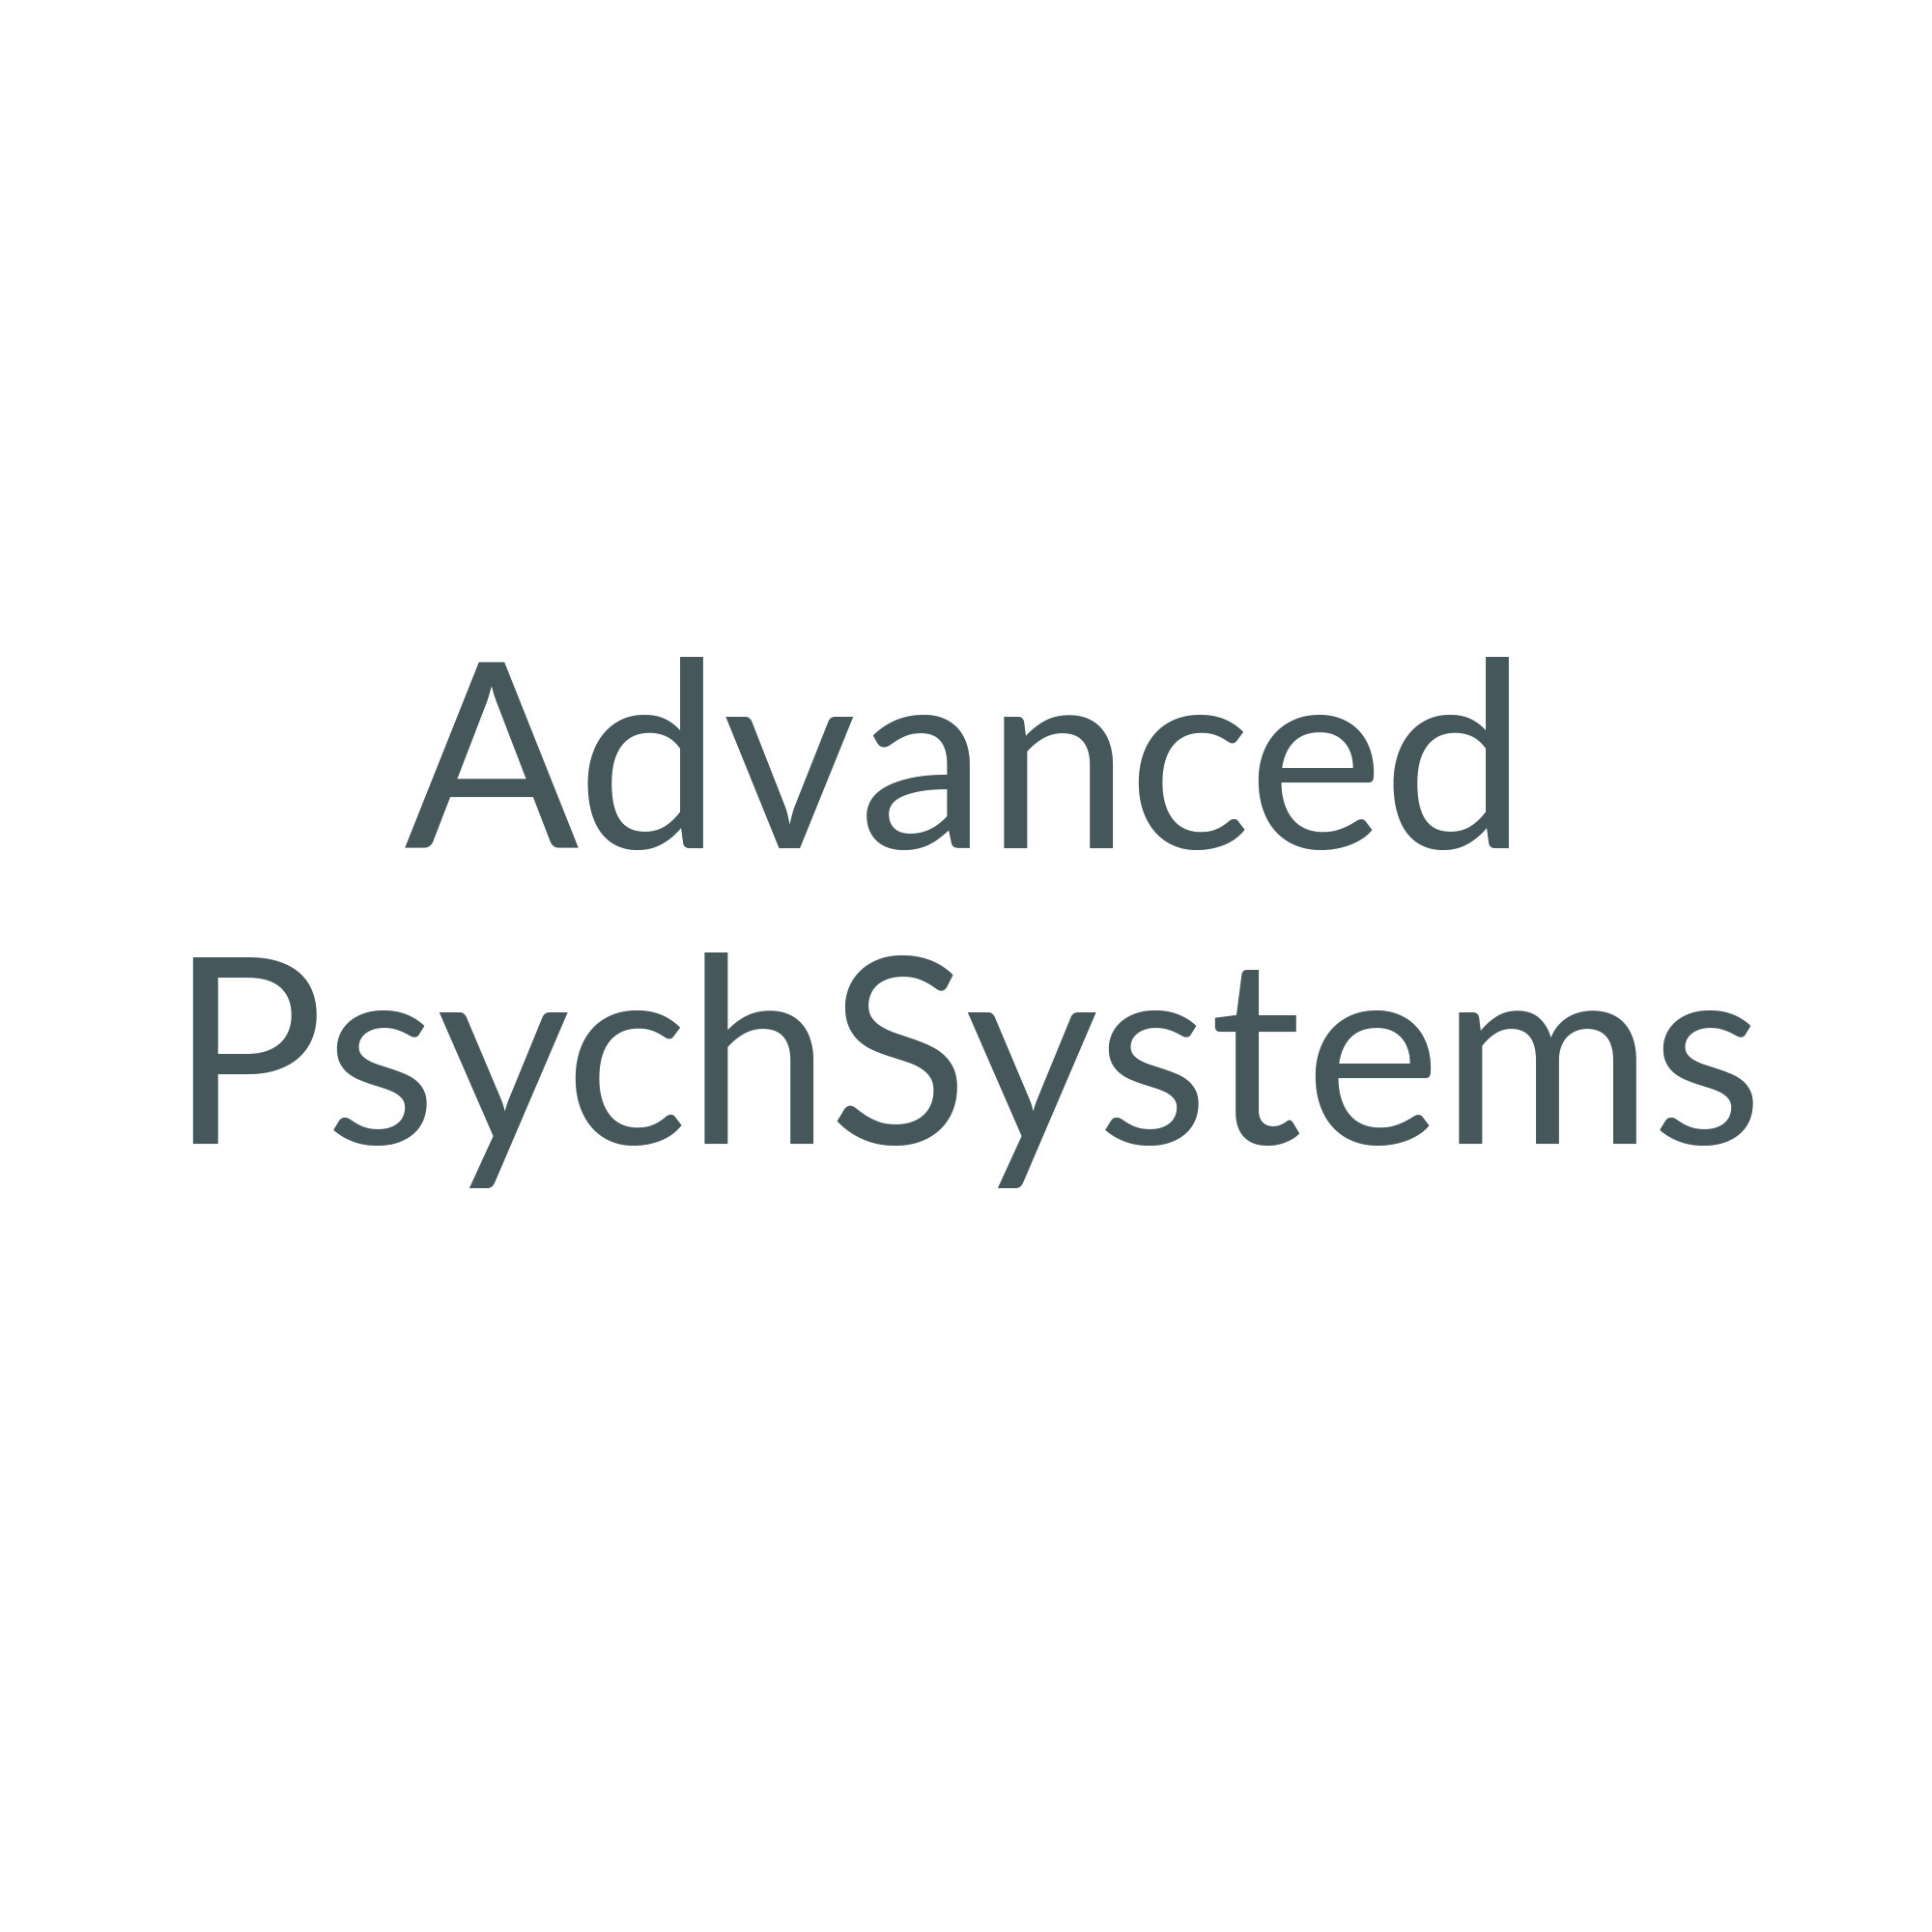 Advanced PsychSystems